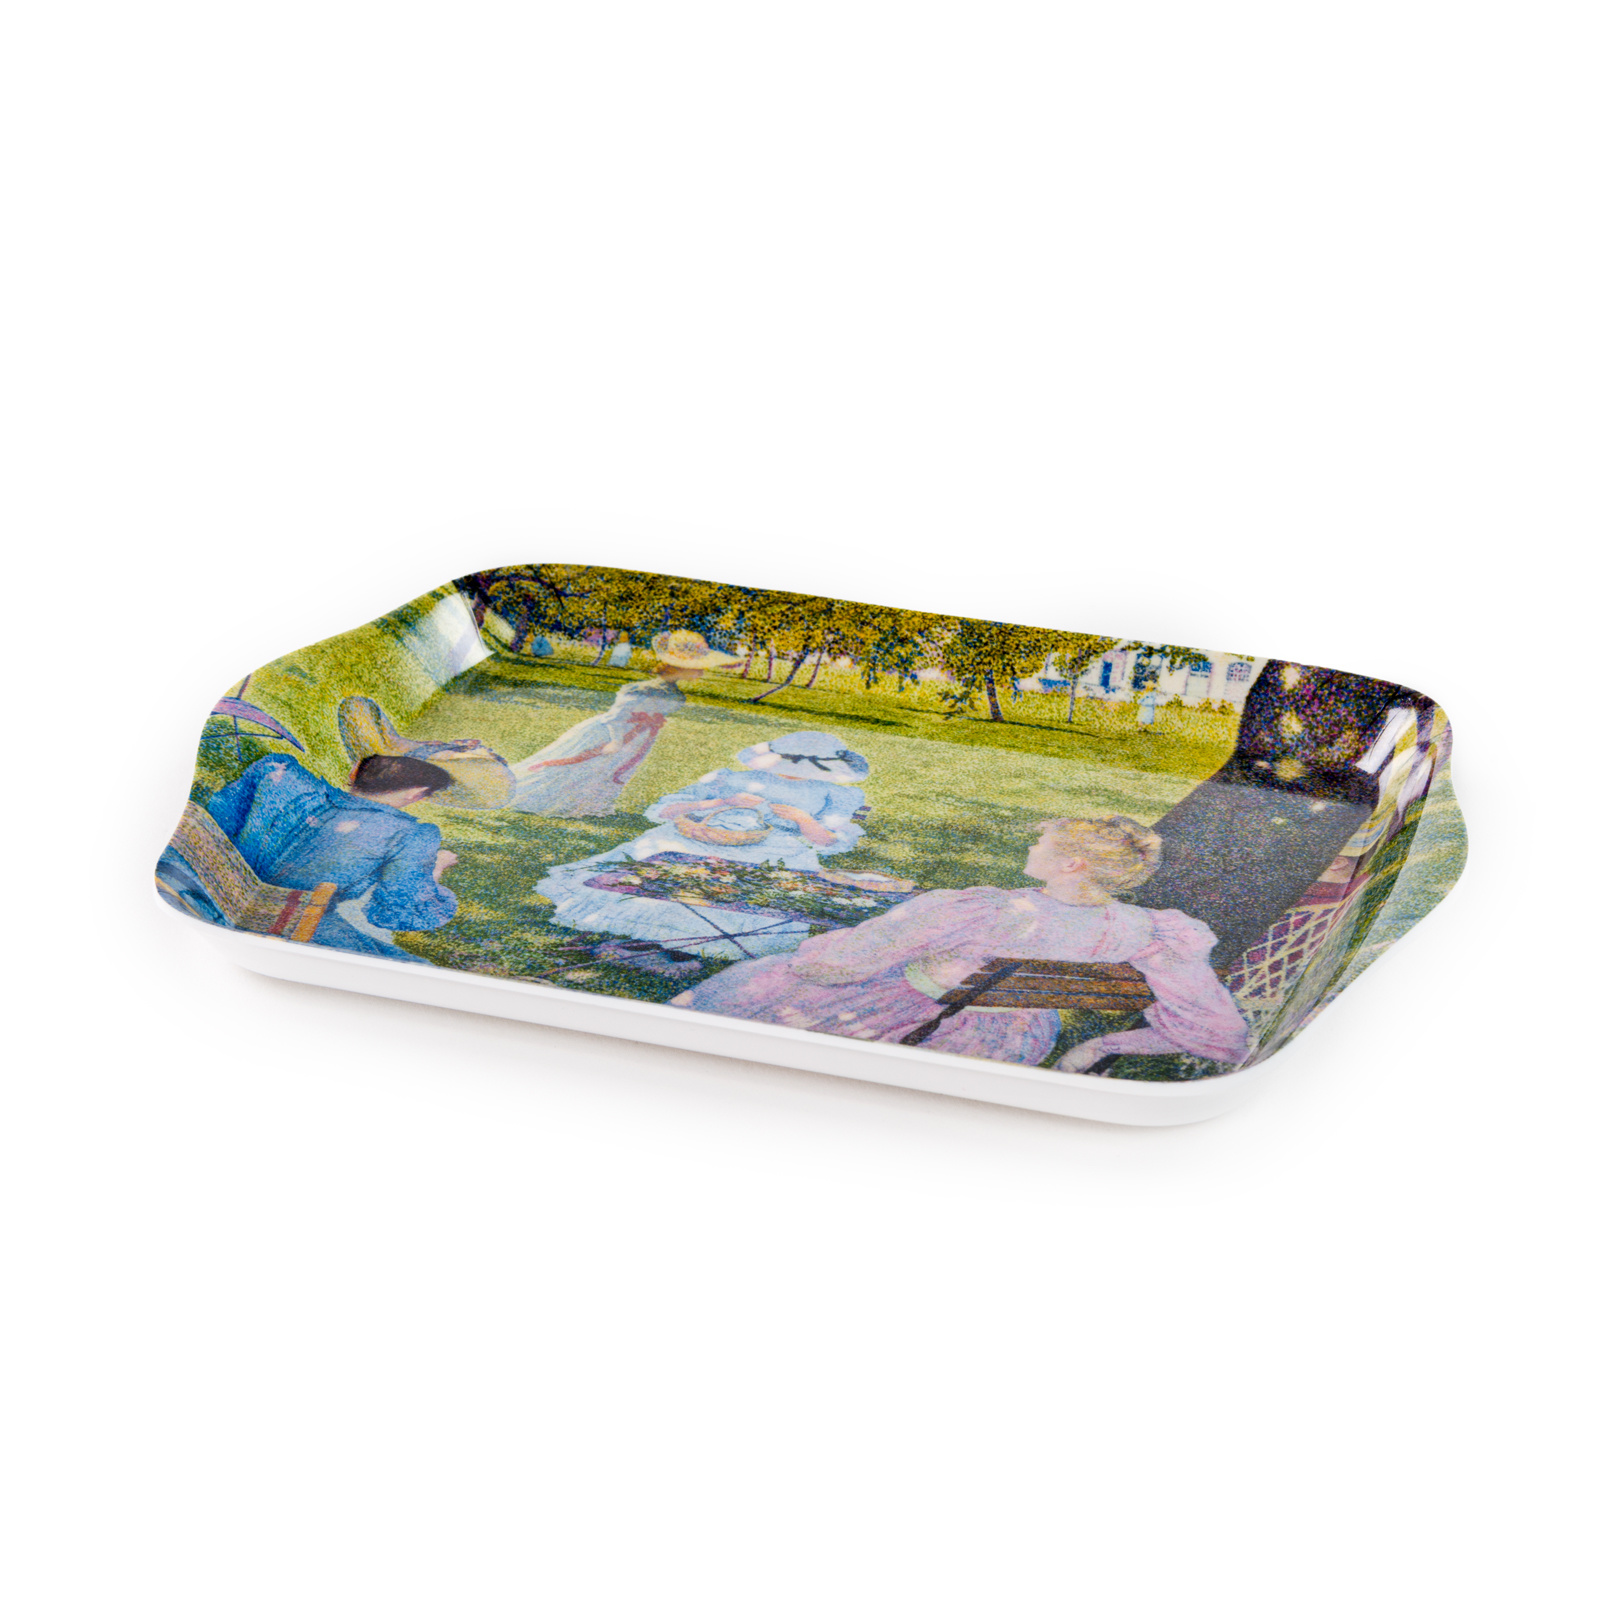 Mini serving tray Théo van Rysselberghe The orchard